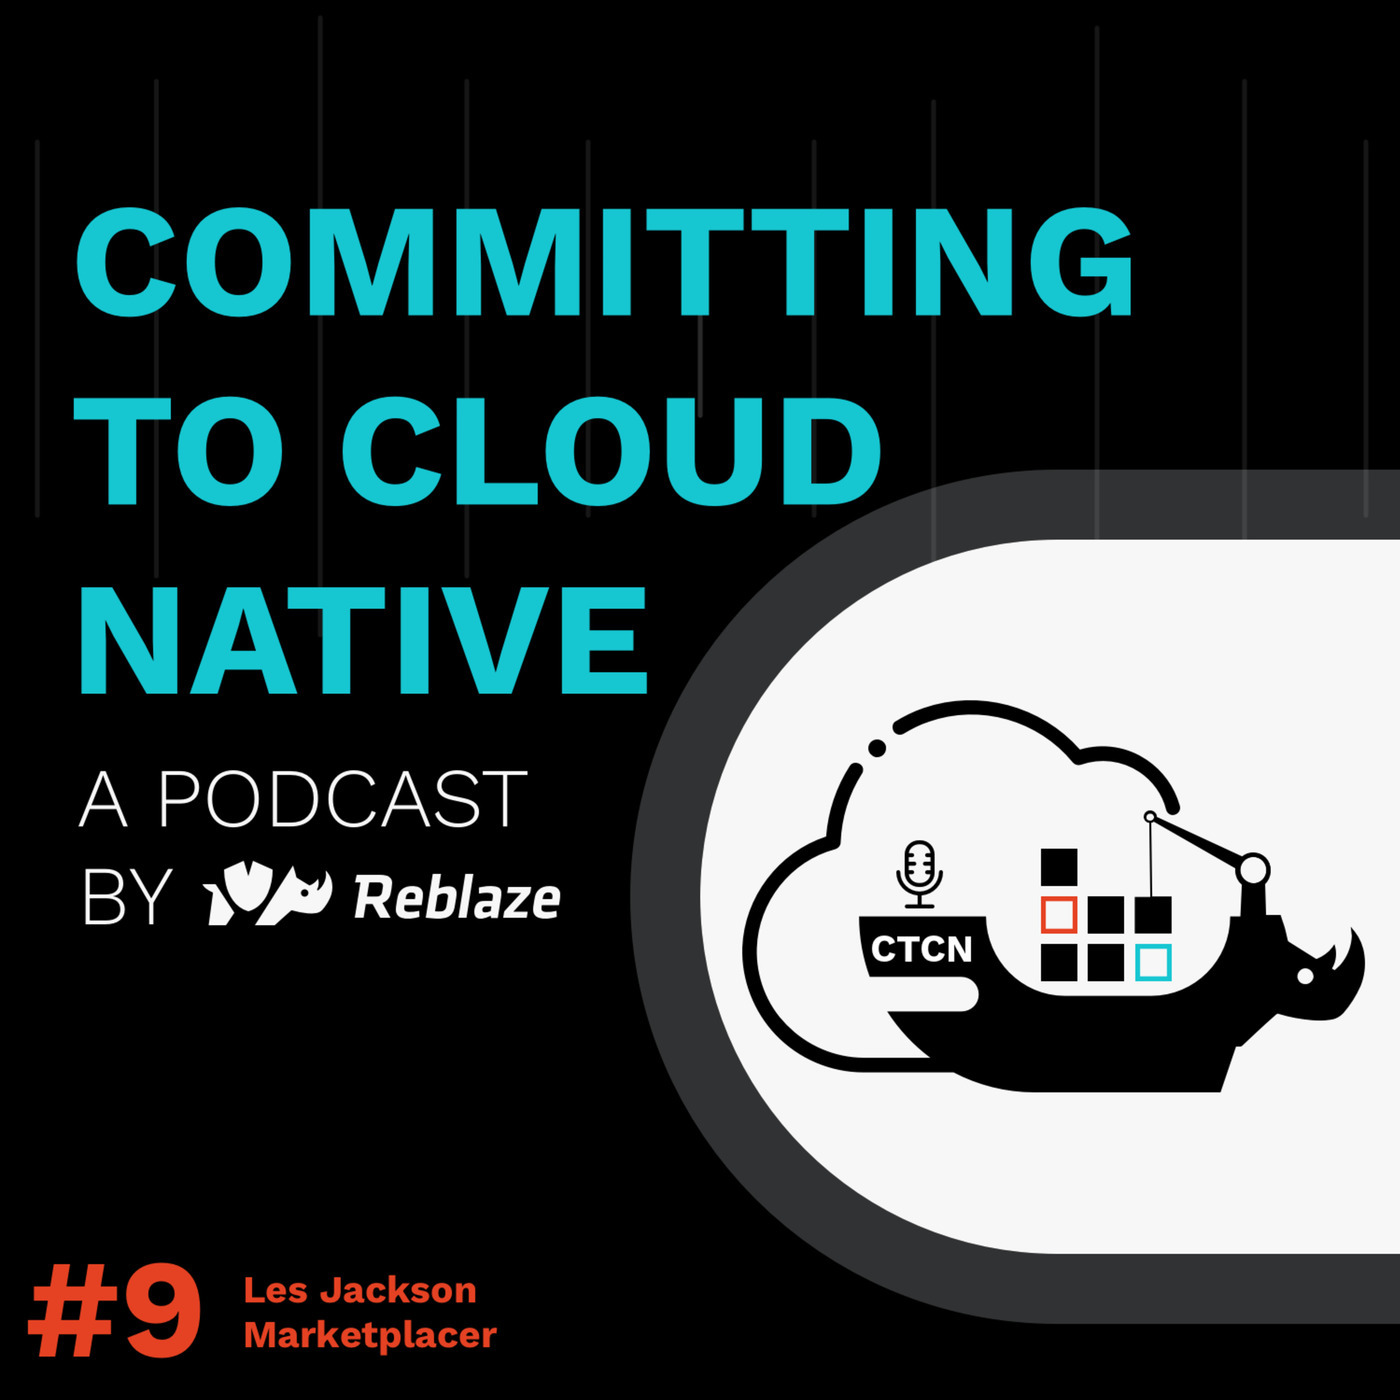 Committing to Cloud Native 9: Microservices are Interesting with Les Jackson